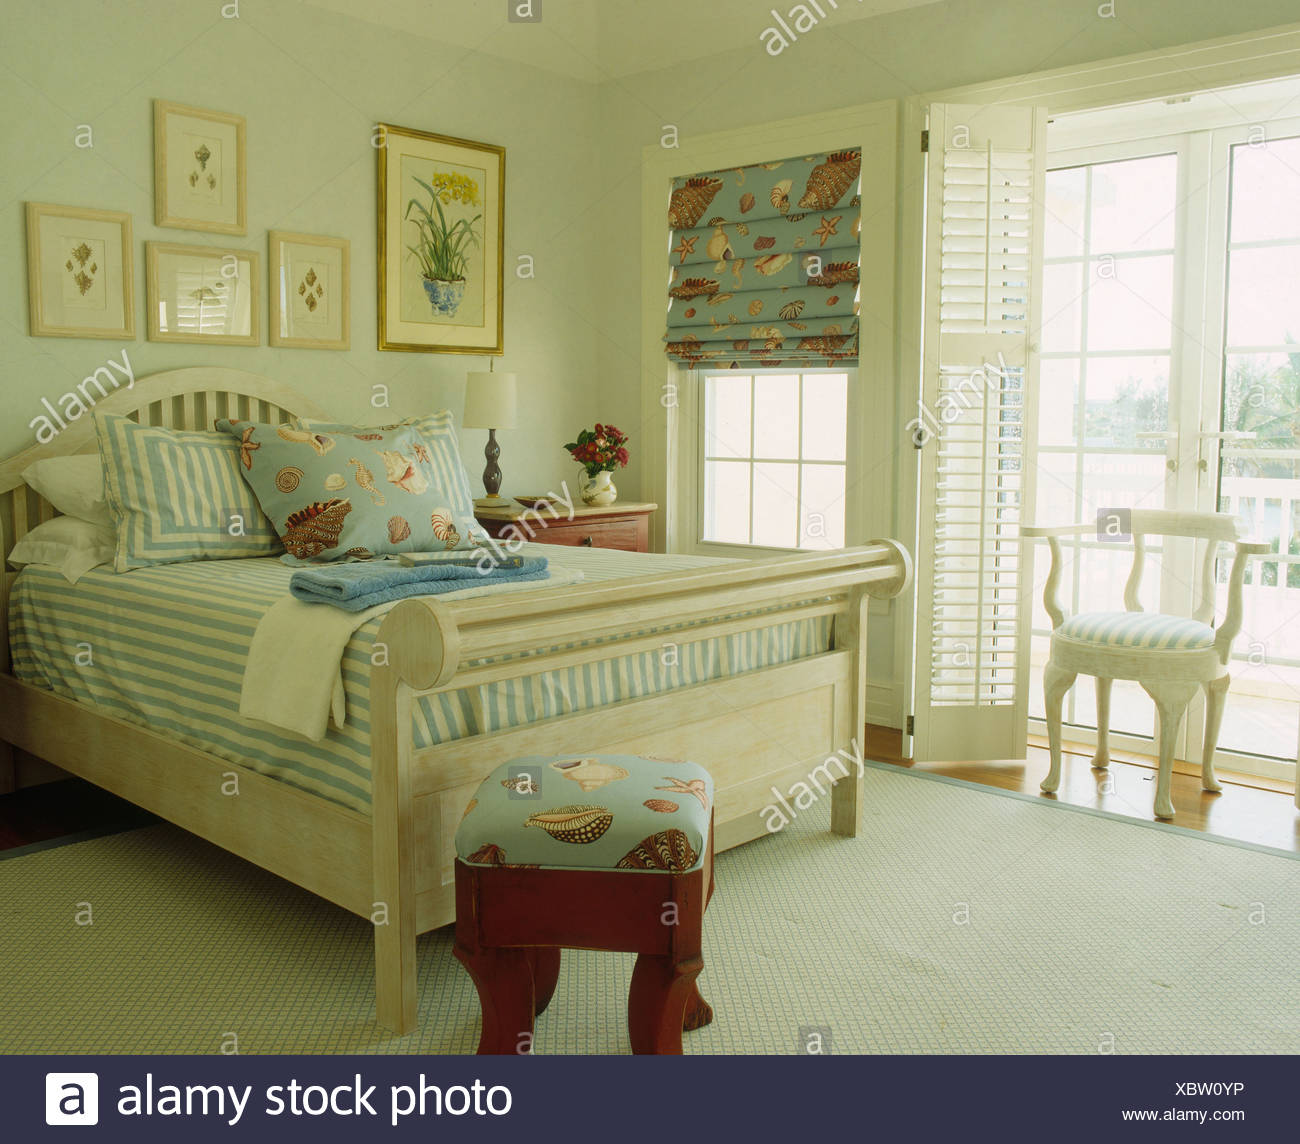 Striped Blue Cover On Pale Wood Bed In Bermudan Bedroom Plantation